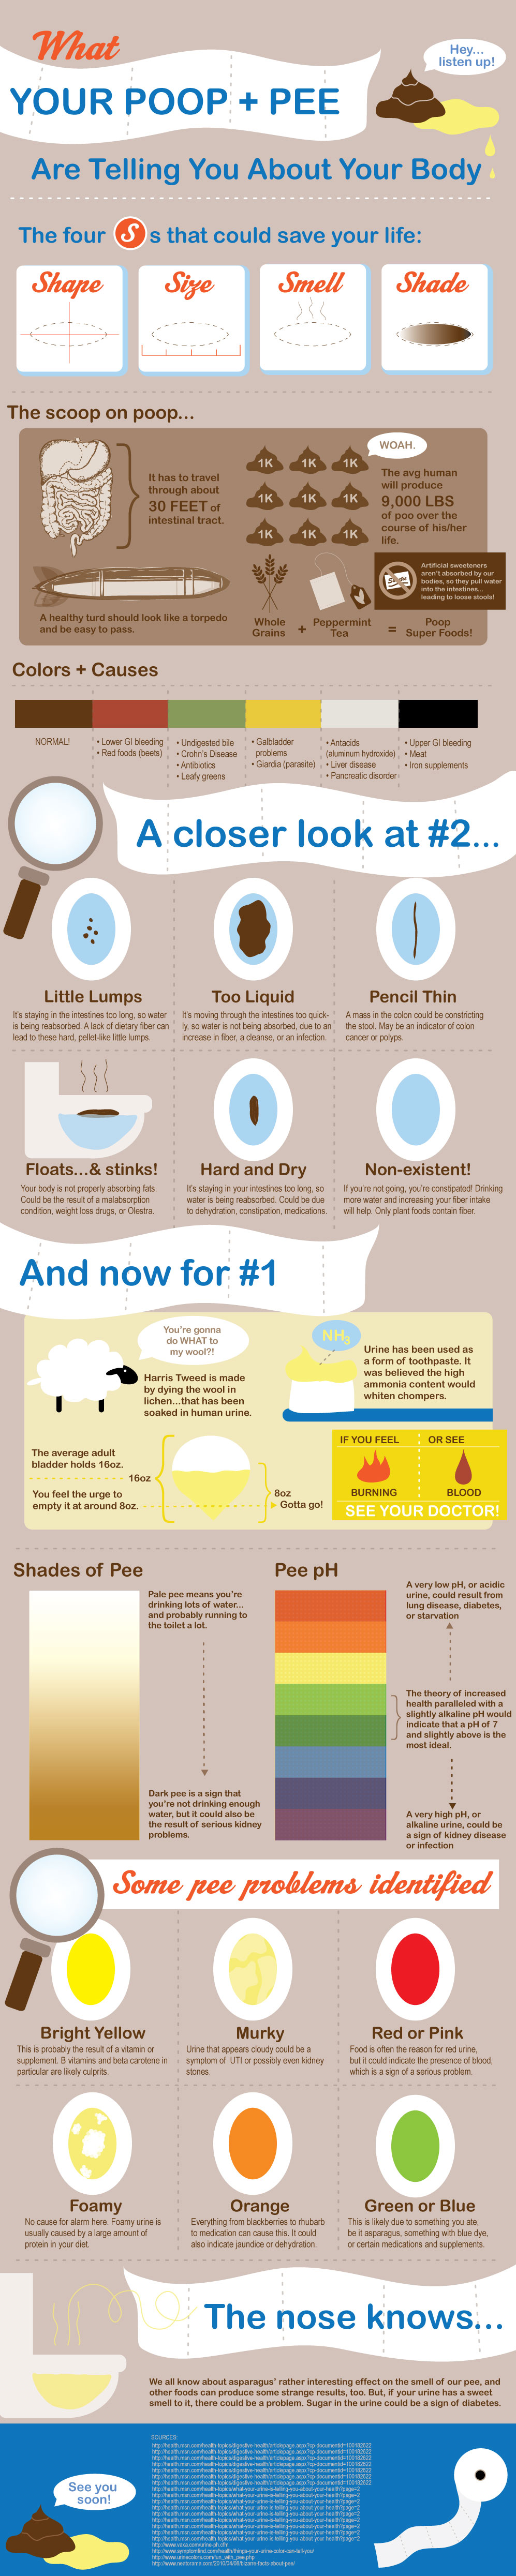 what_your_poop_and_pee_tell_about_your_body_230115b